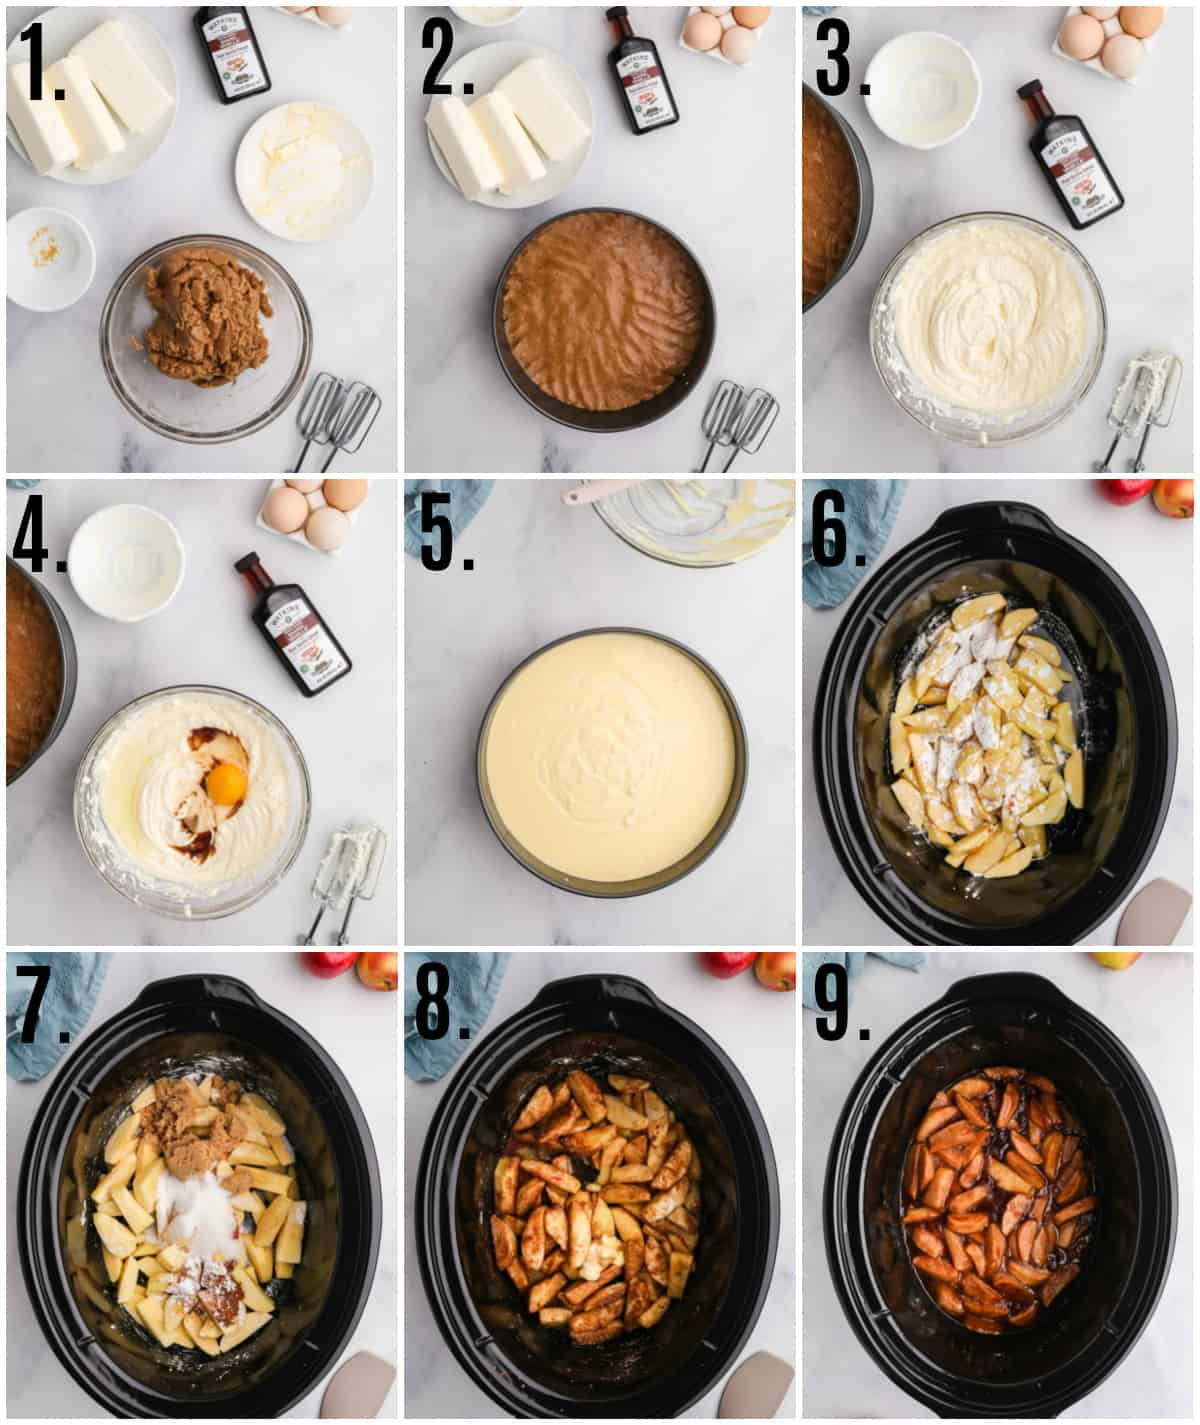 Step by step photos on how to make Cinnamon Apple Cheesecake